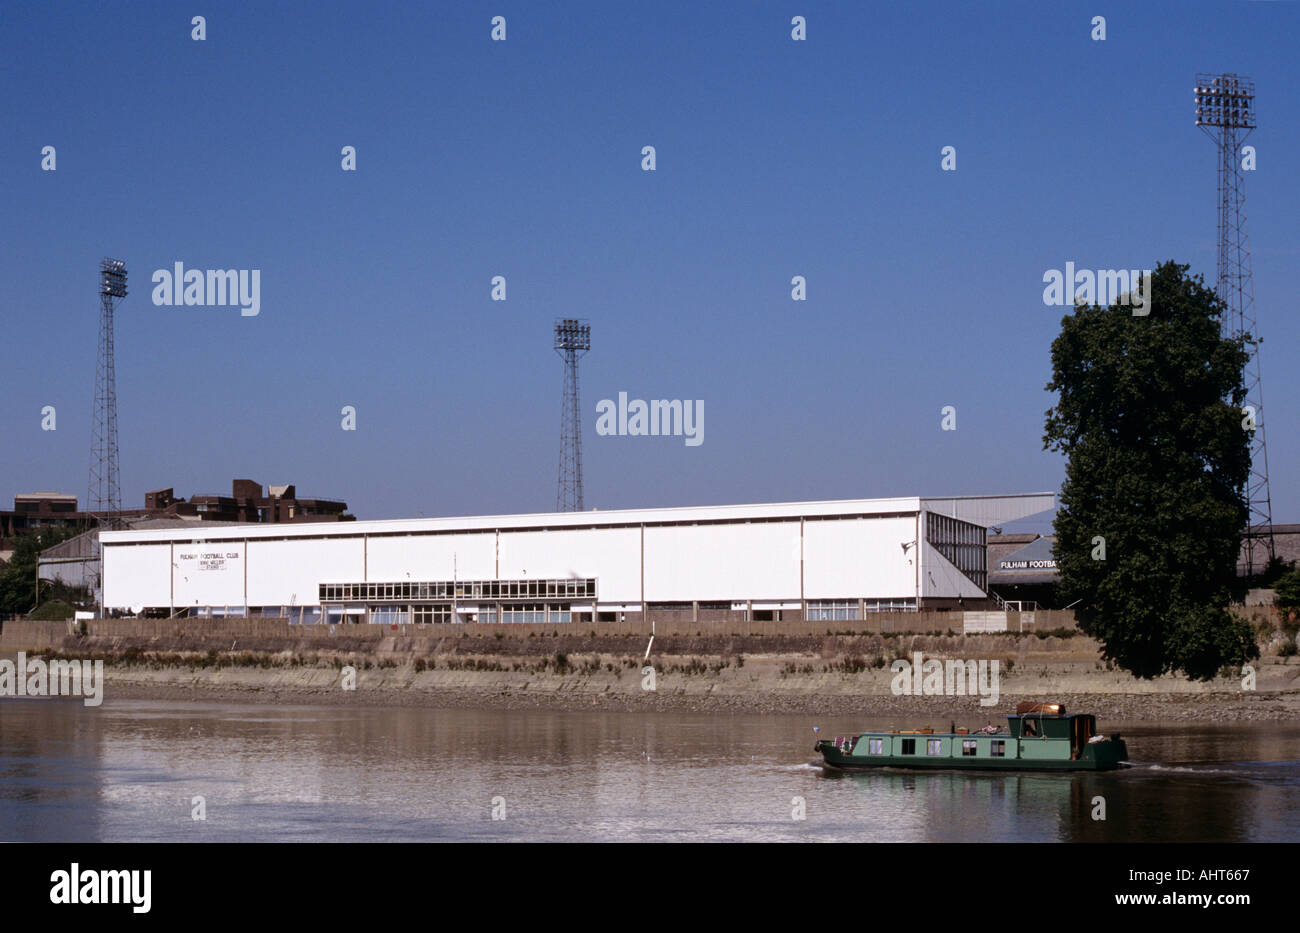 Fulham Football Club s ground at Craven Cottage on River Thames LONDON - Stock Image